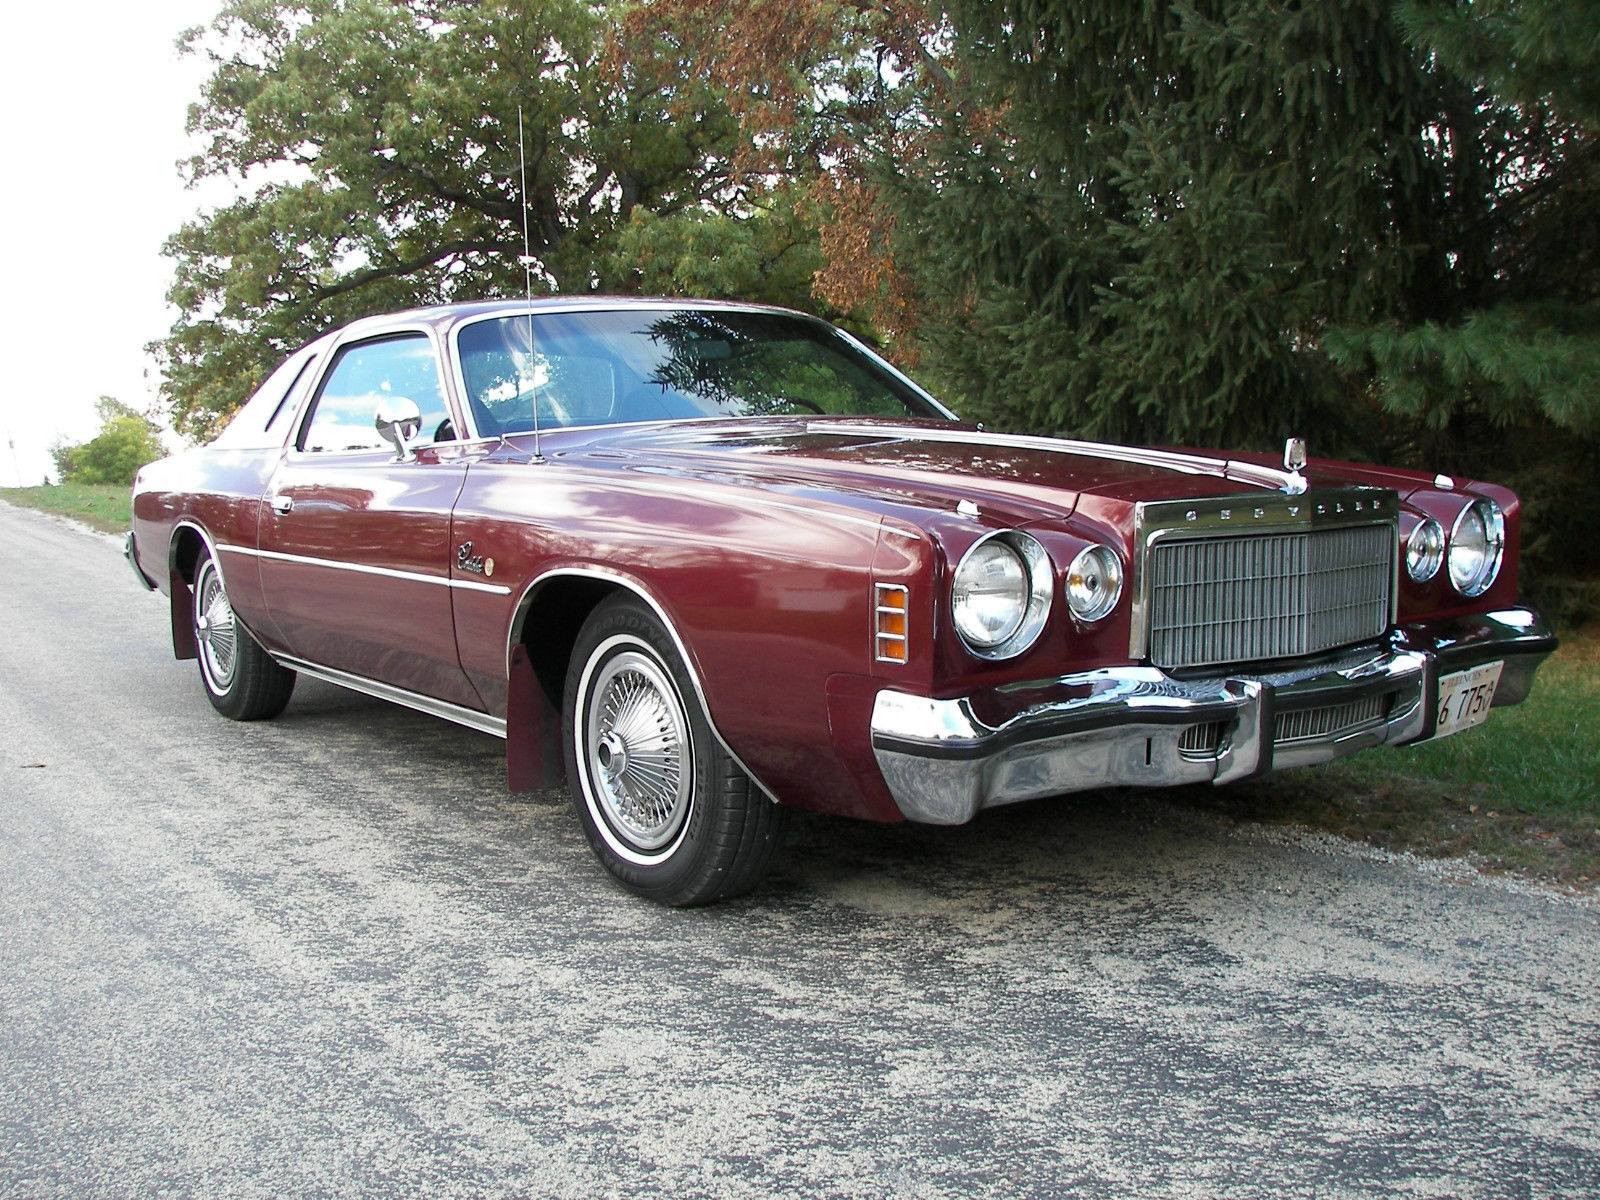 1975 Chrysler Cordoba 2 Door Coupe